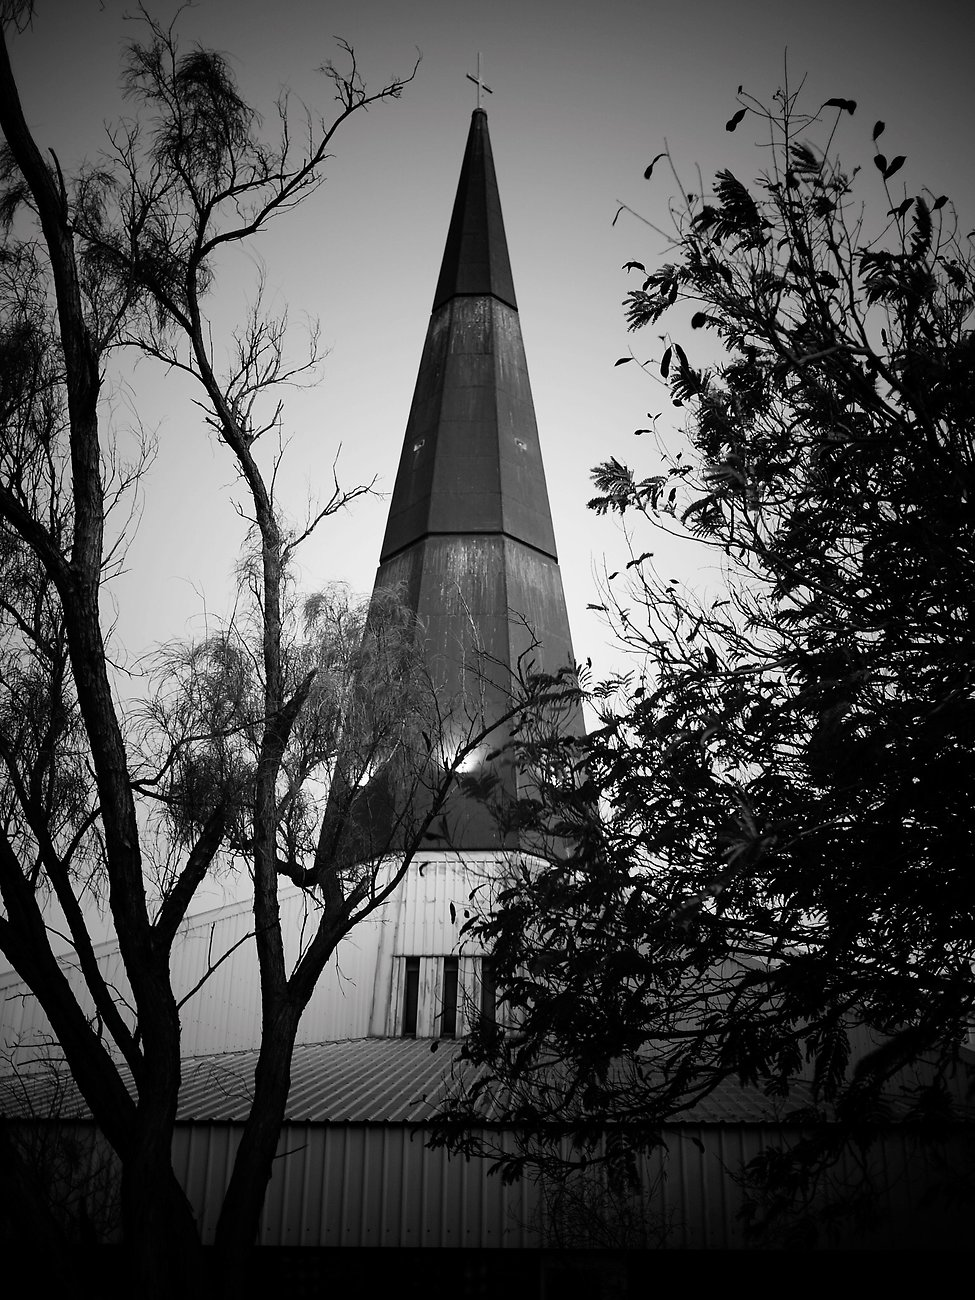 Day 29: Church of the tin-clad rocket ship.